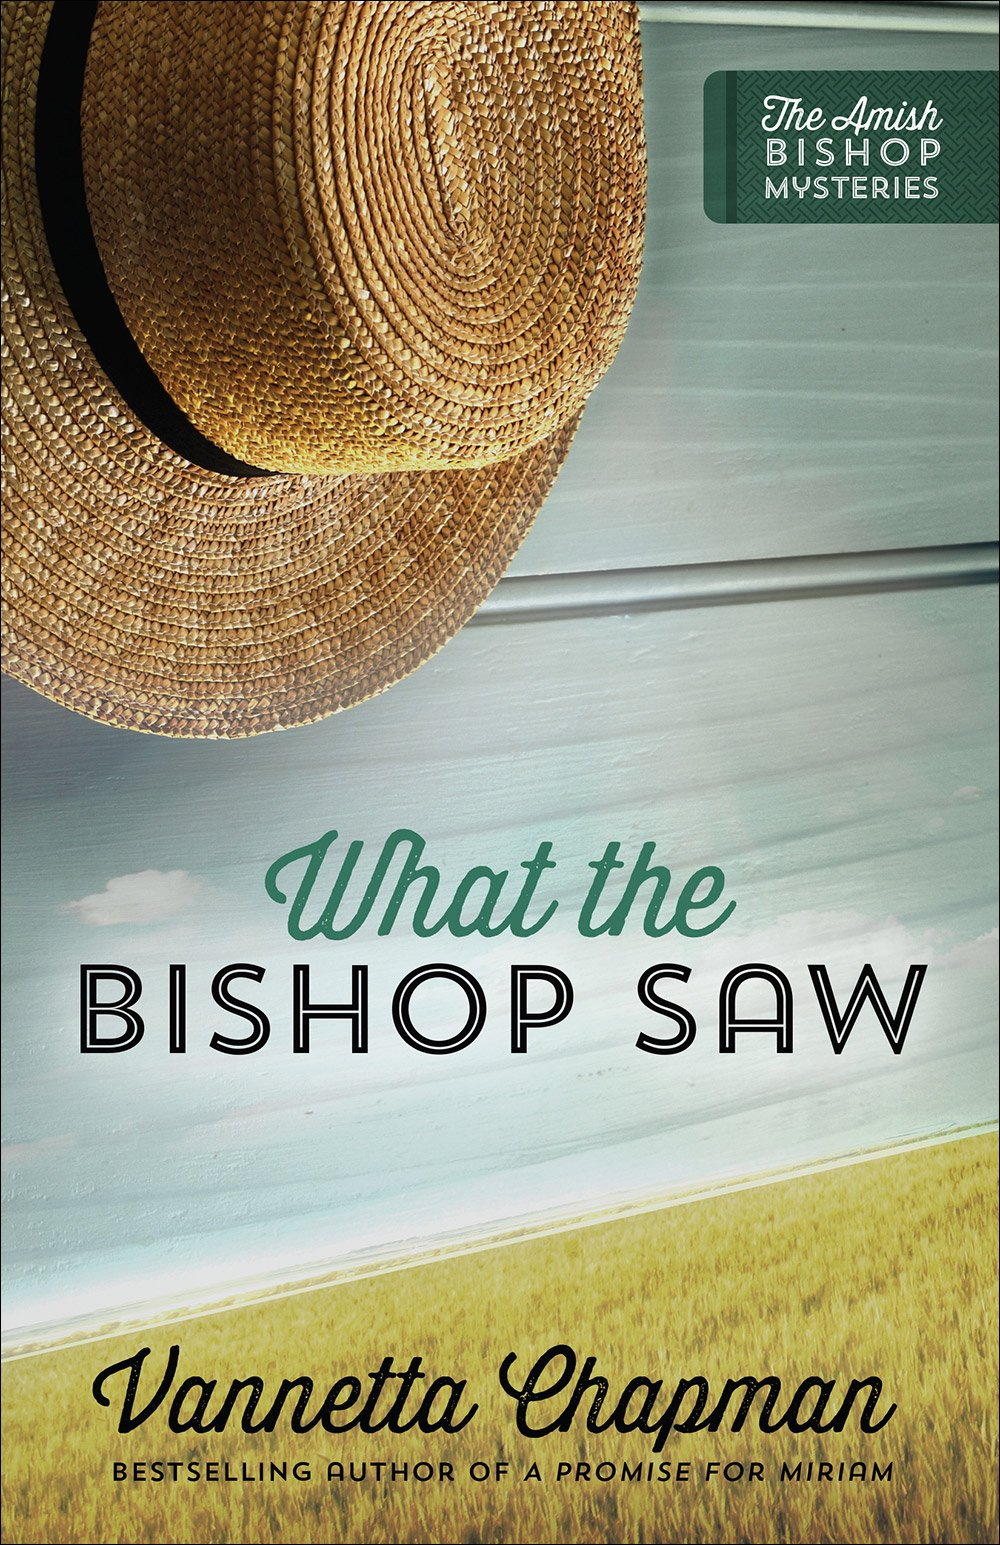 Read Online What the Bishop Saw (The Amish Bishop Mysteries) pdf